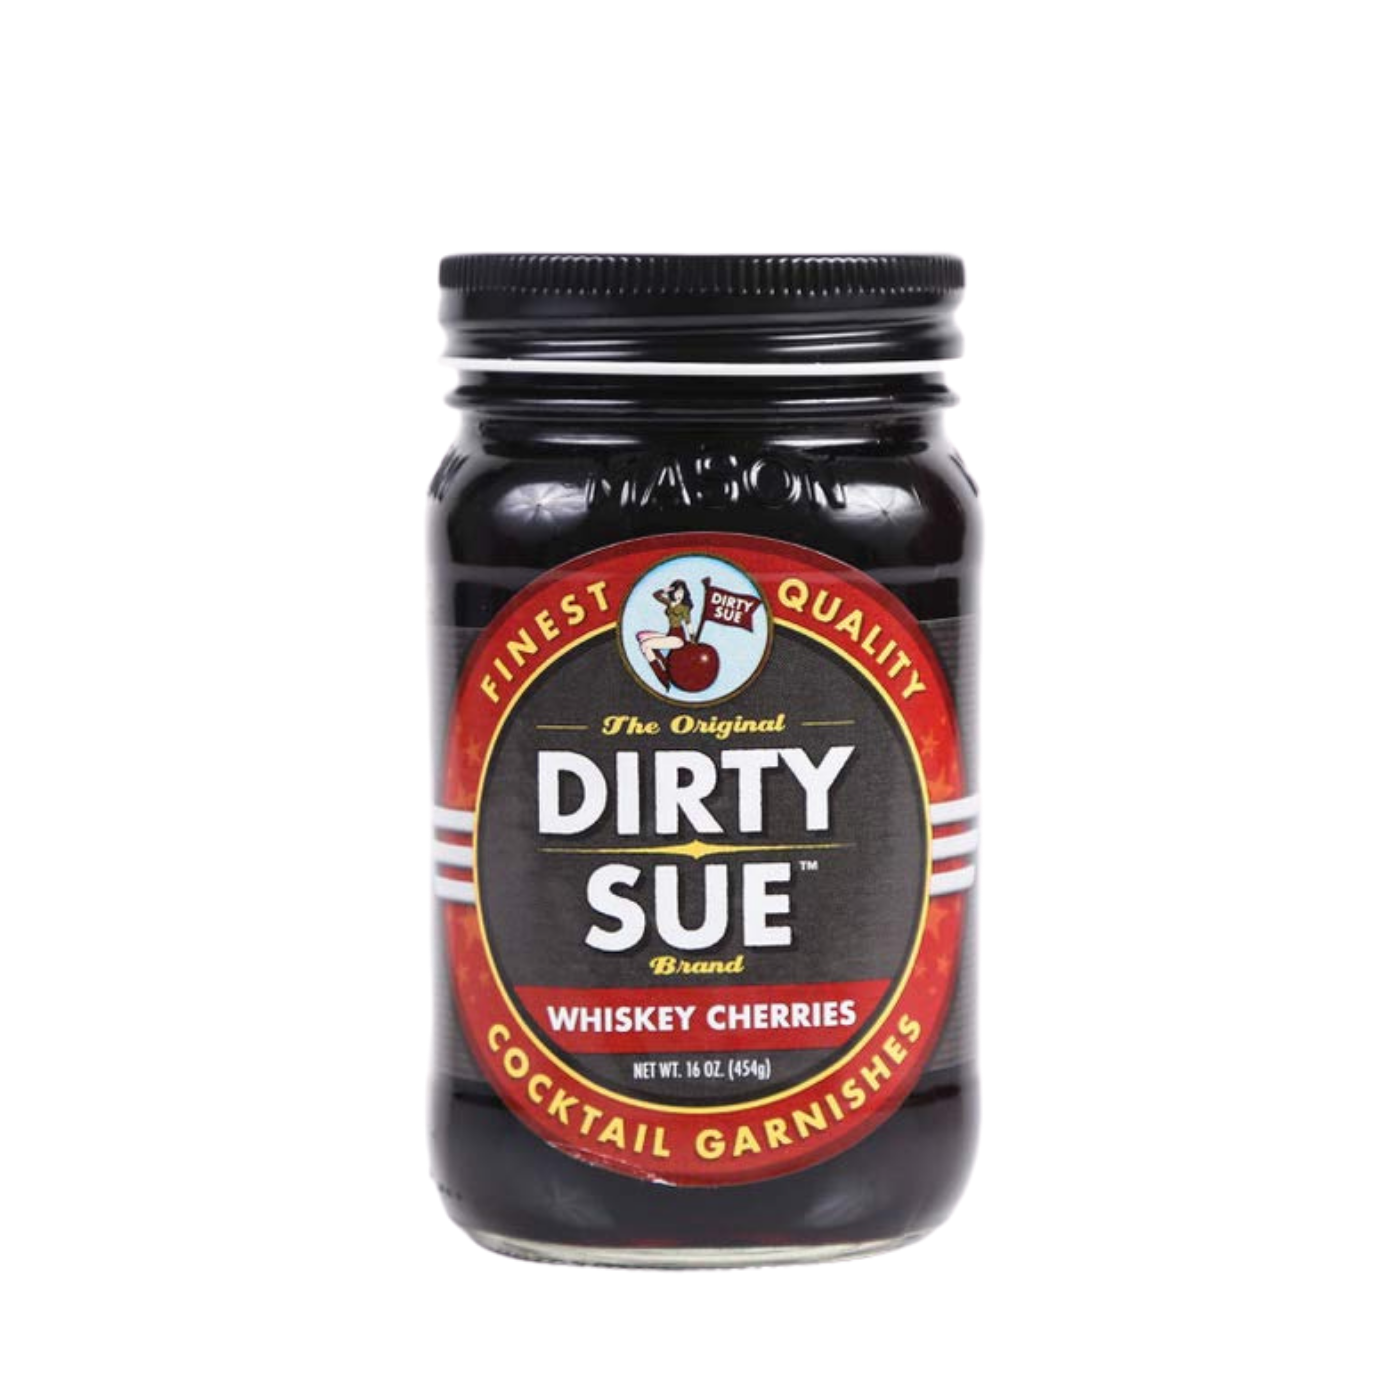 Dirty Sue Whiskey Cherries